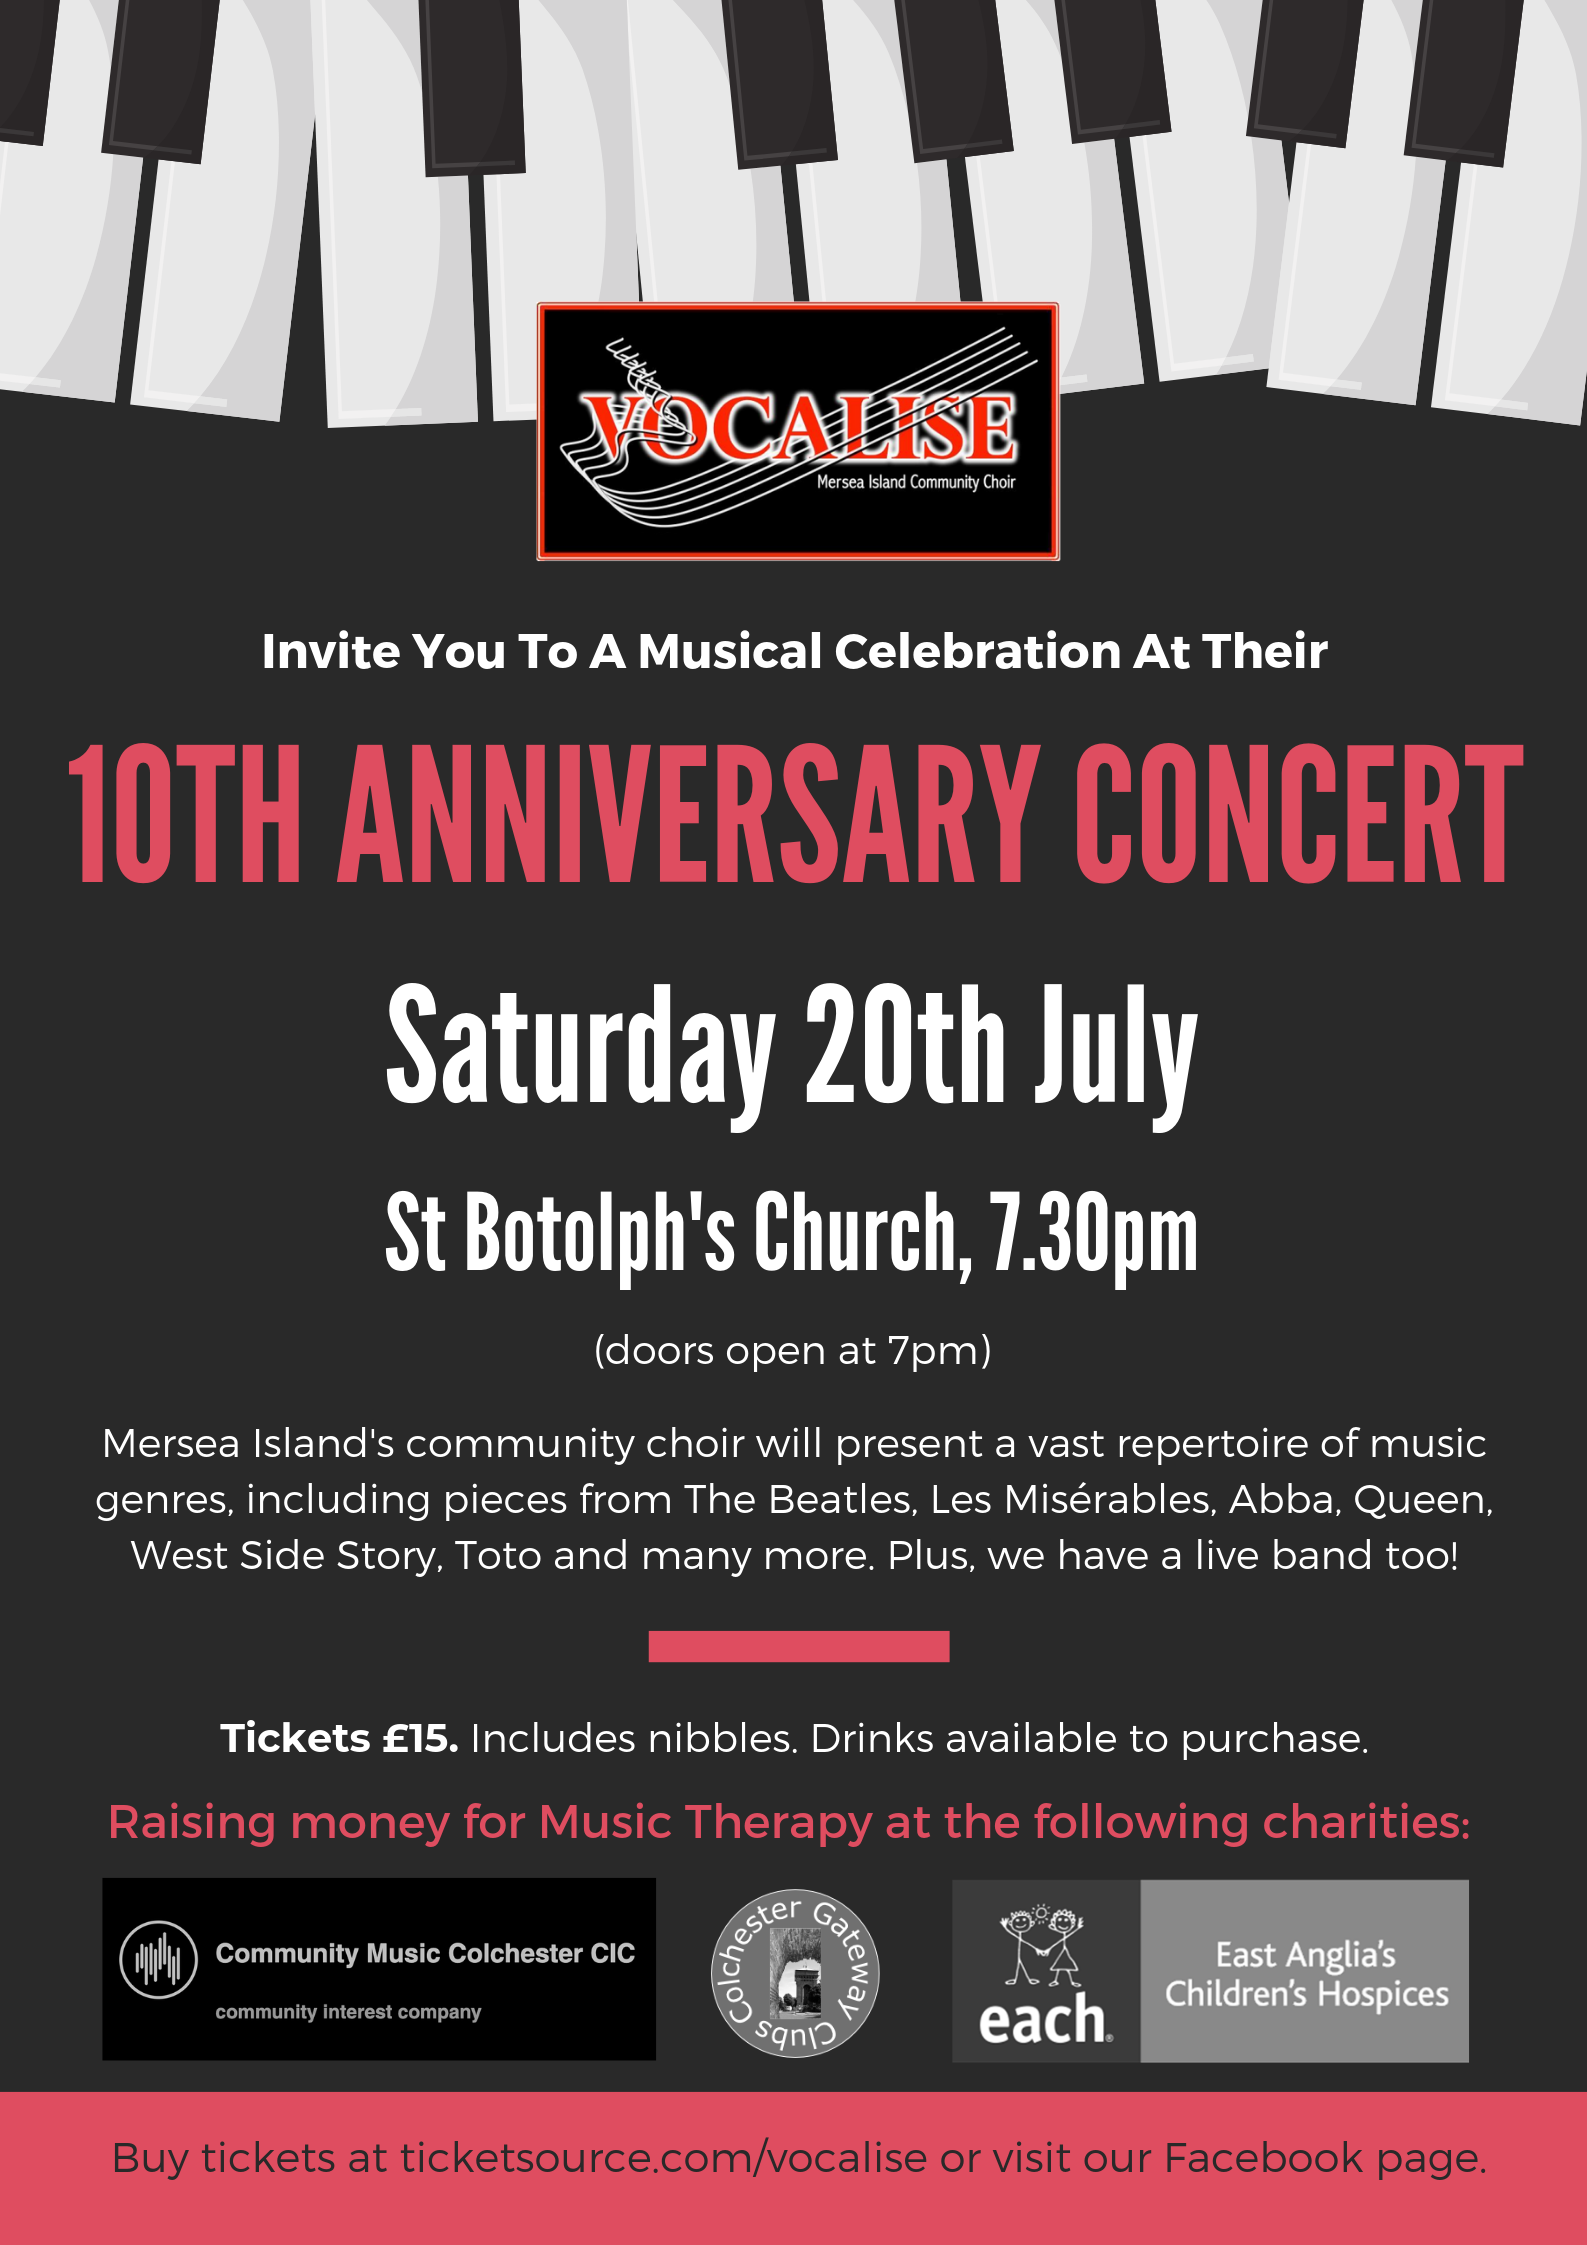 Vocalise's 10th Anniversary Concert